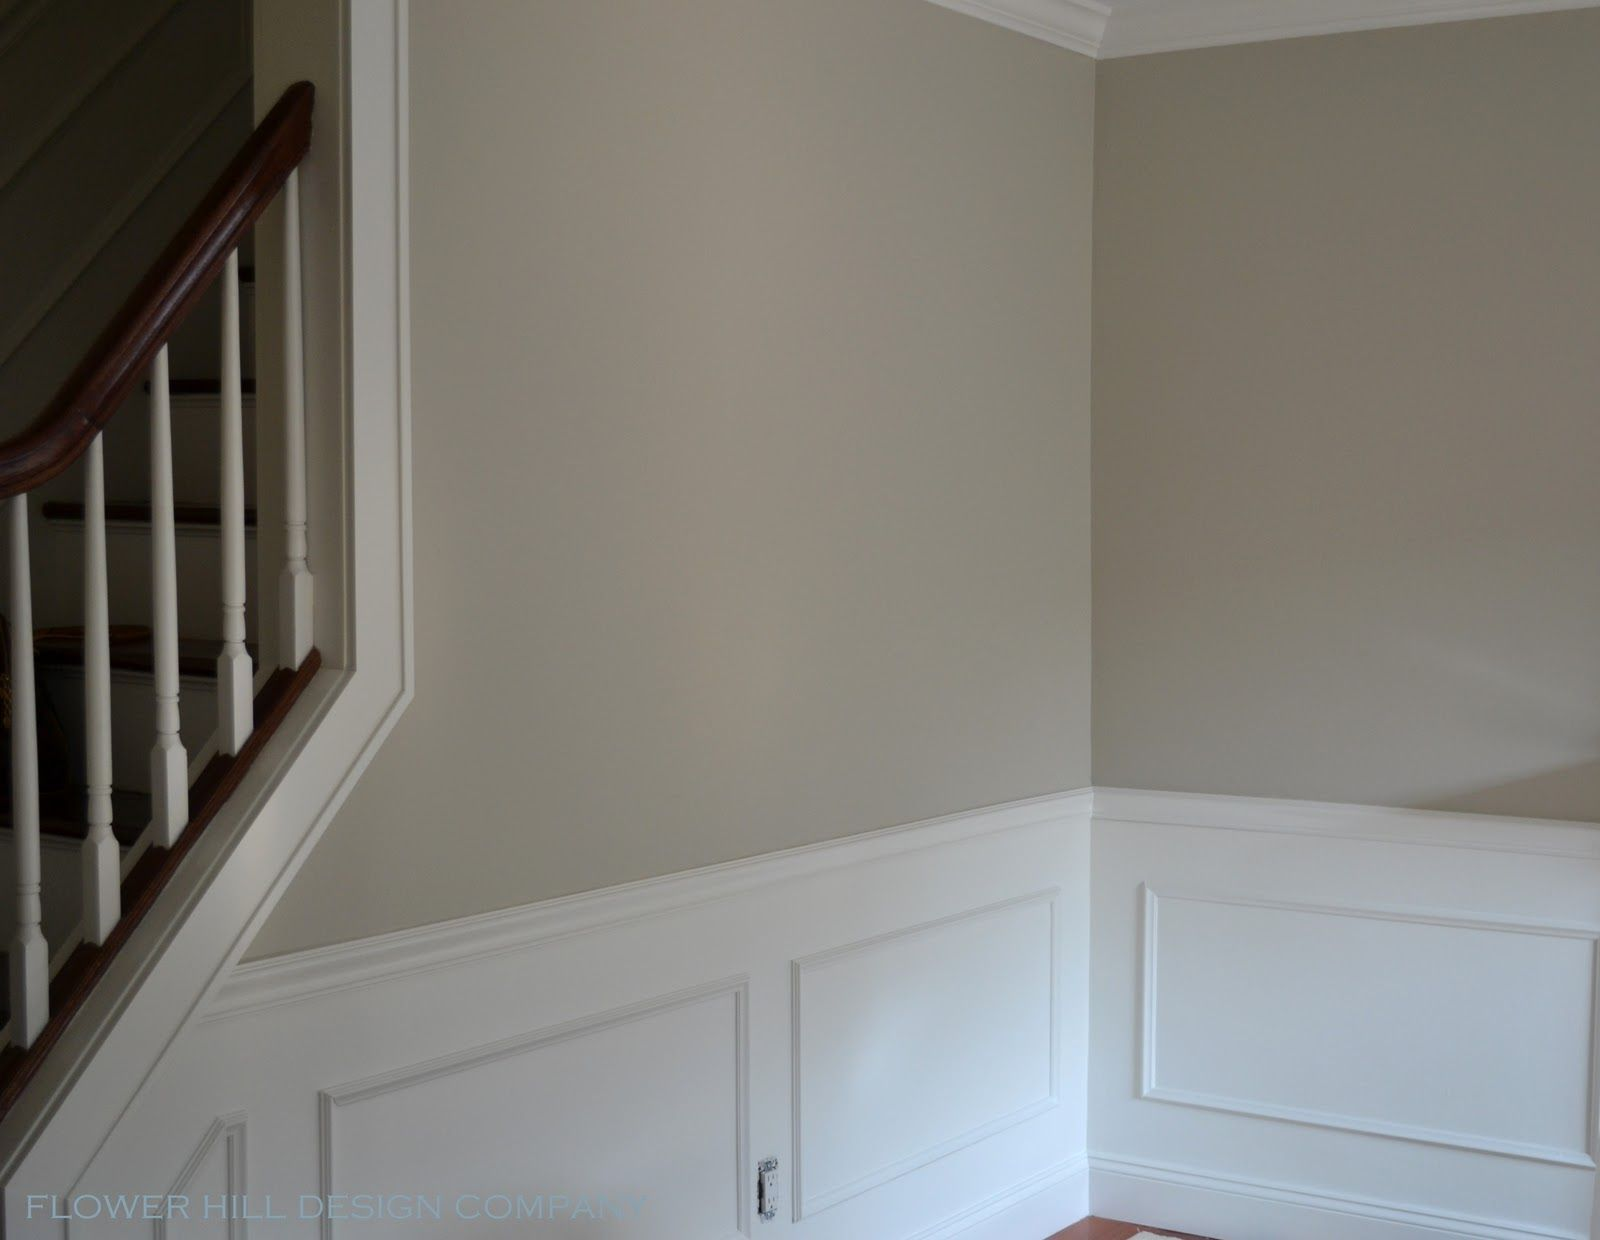 Benjamin moore revere pewter and benjamin moore dove white for Benjamin moore pewter 2121 30